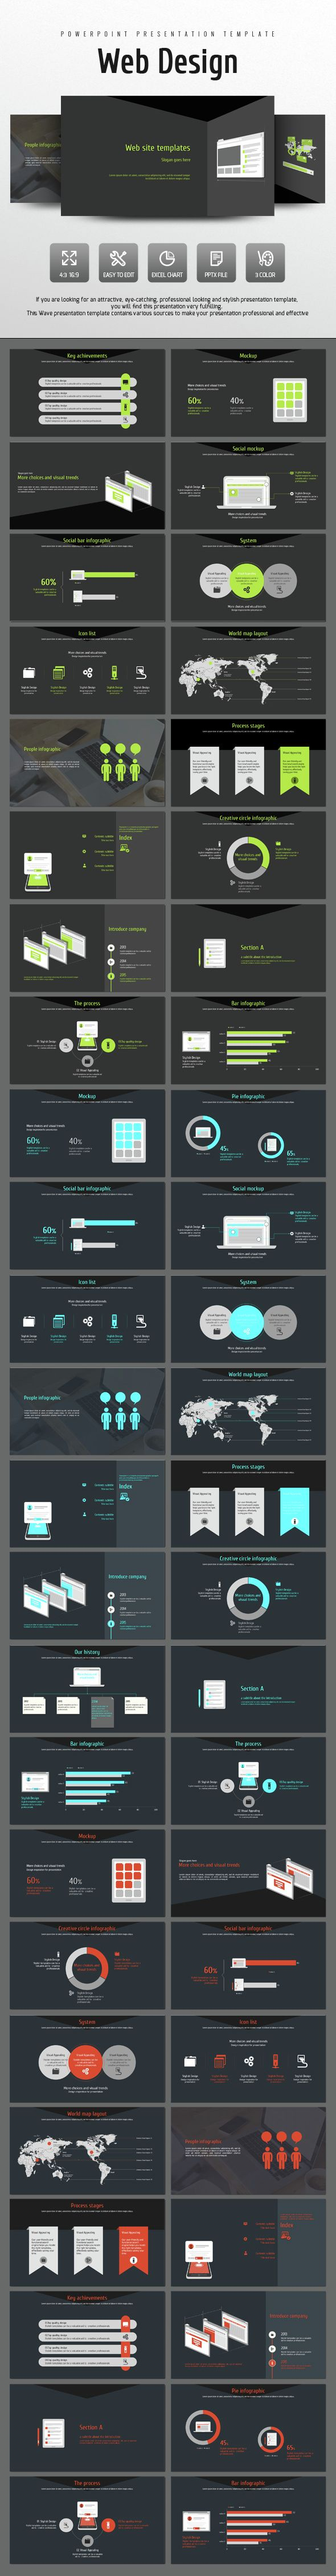 Web Design (PowerPoint Templates)